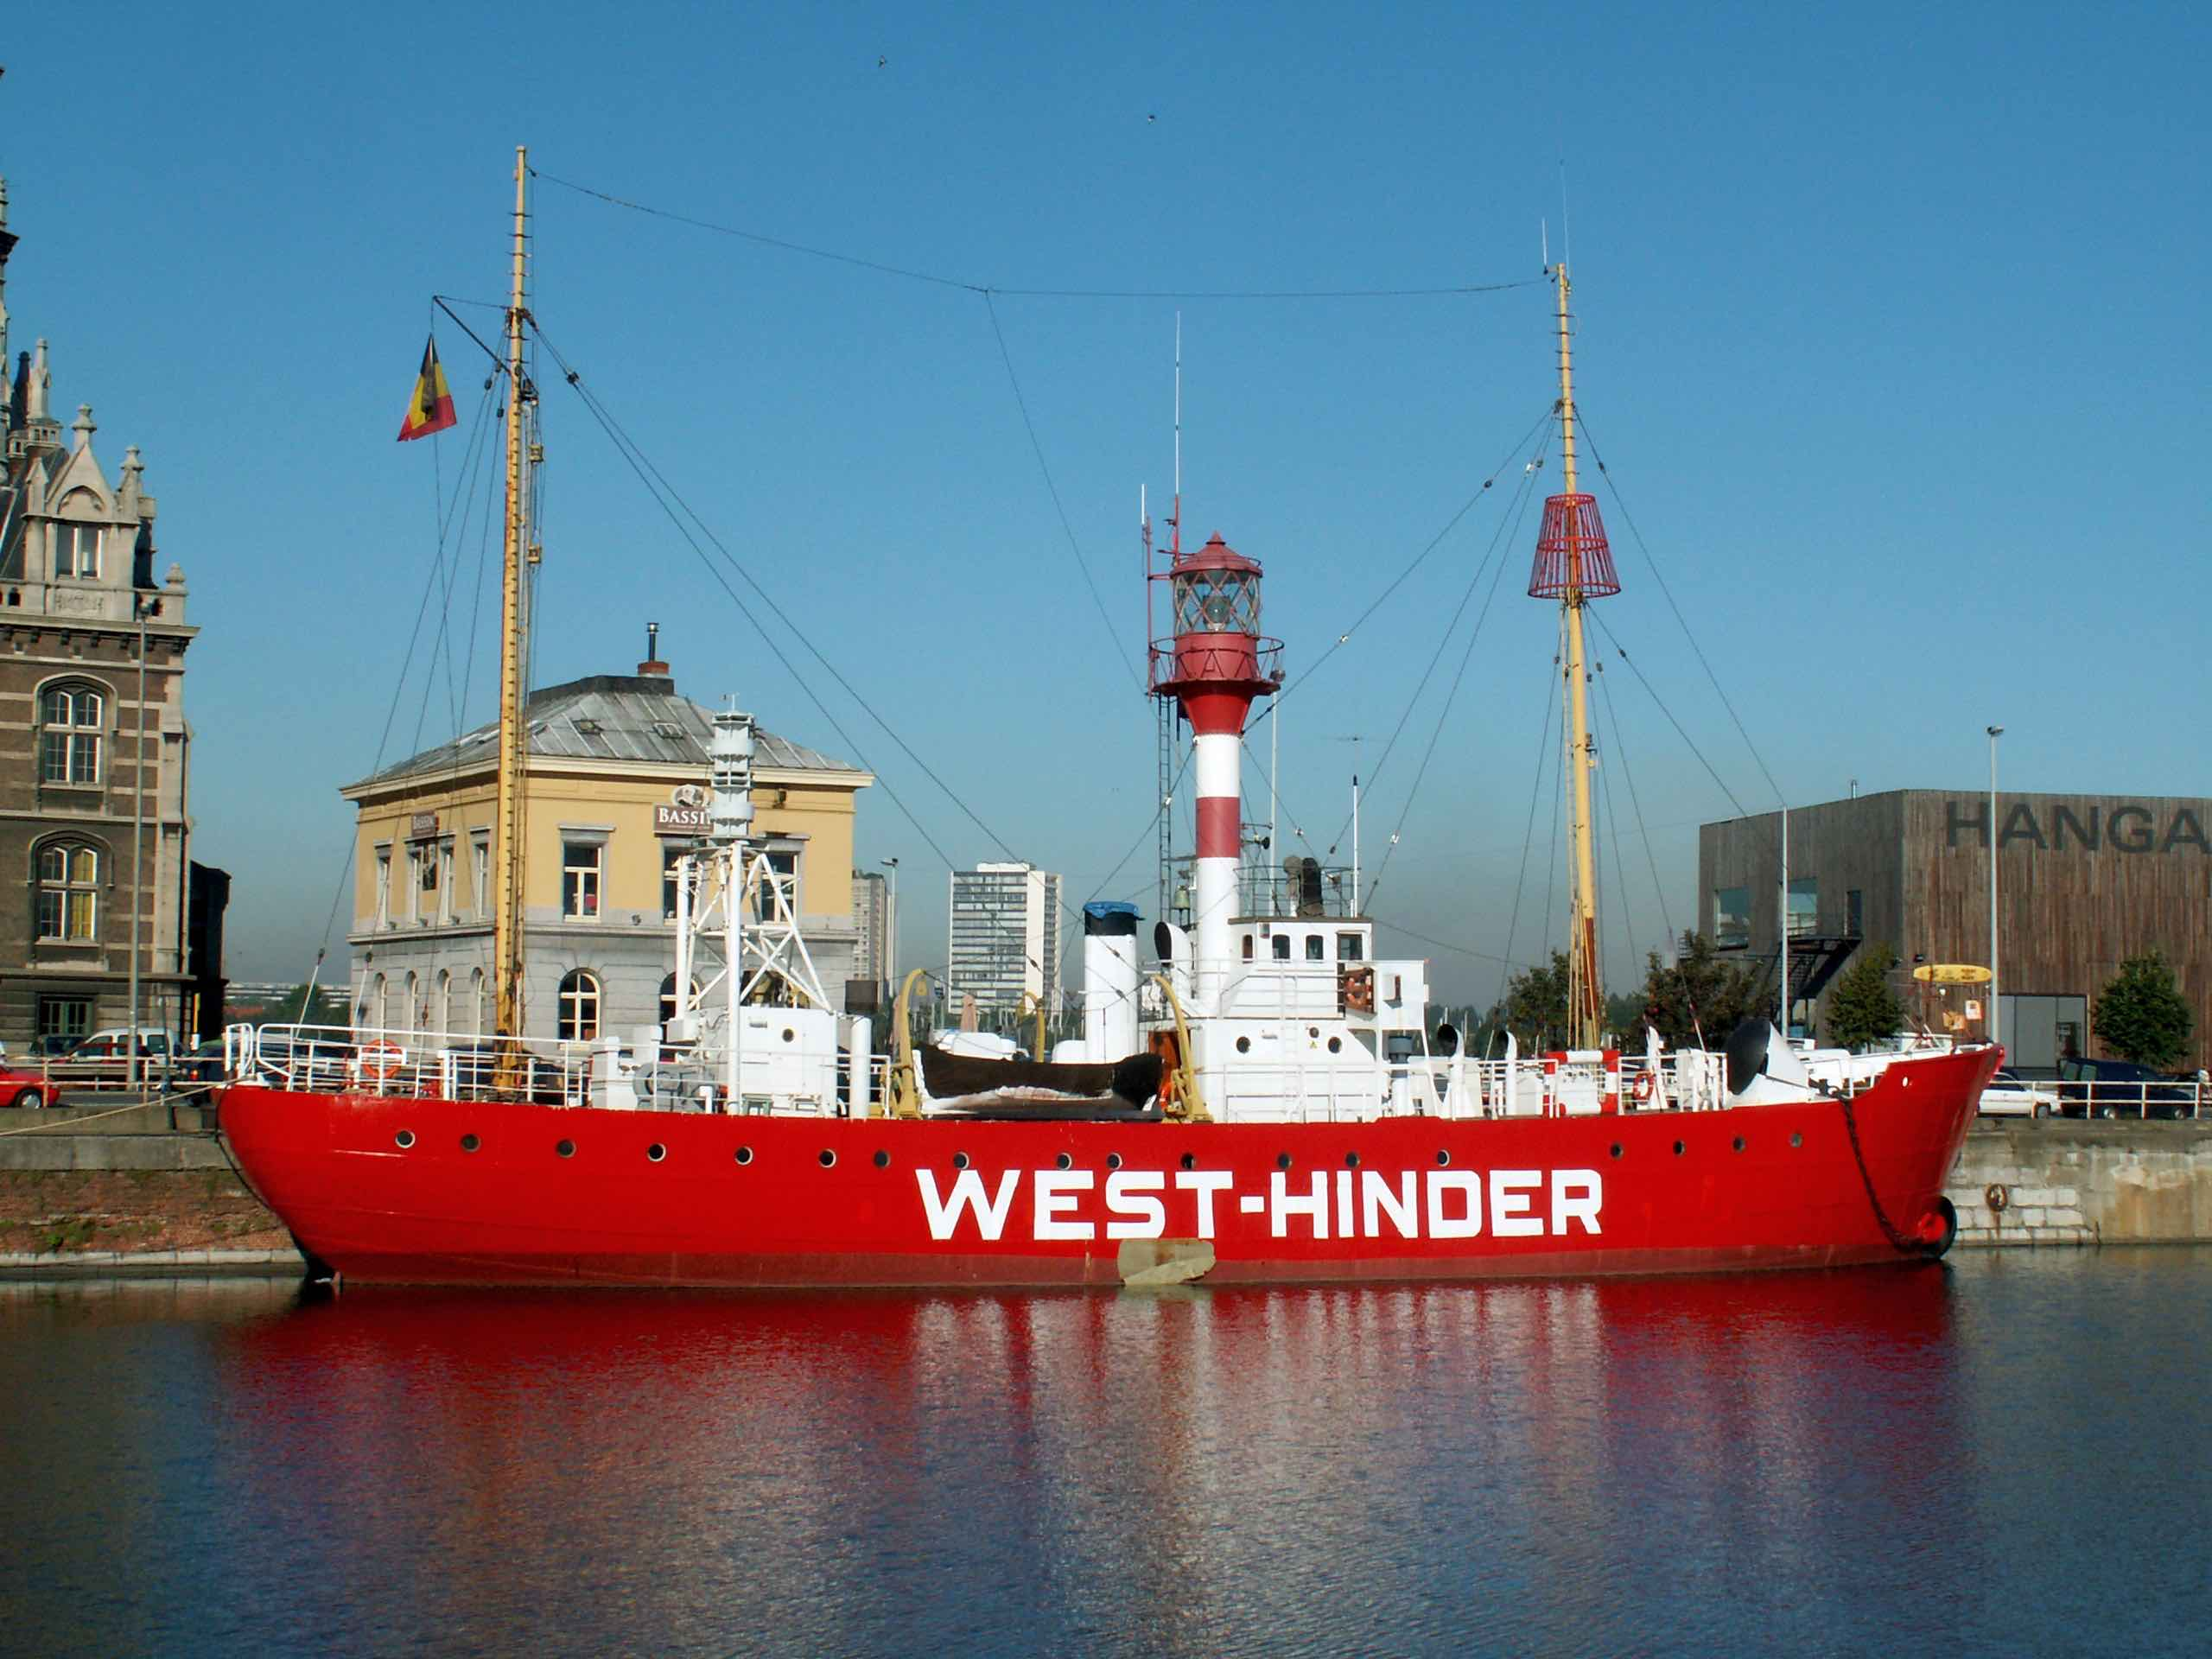 West-Hinder III lightship | © Alf van Beem / Wikimedia Commons